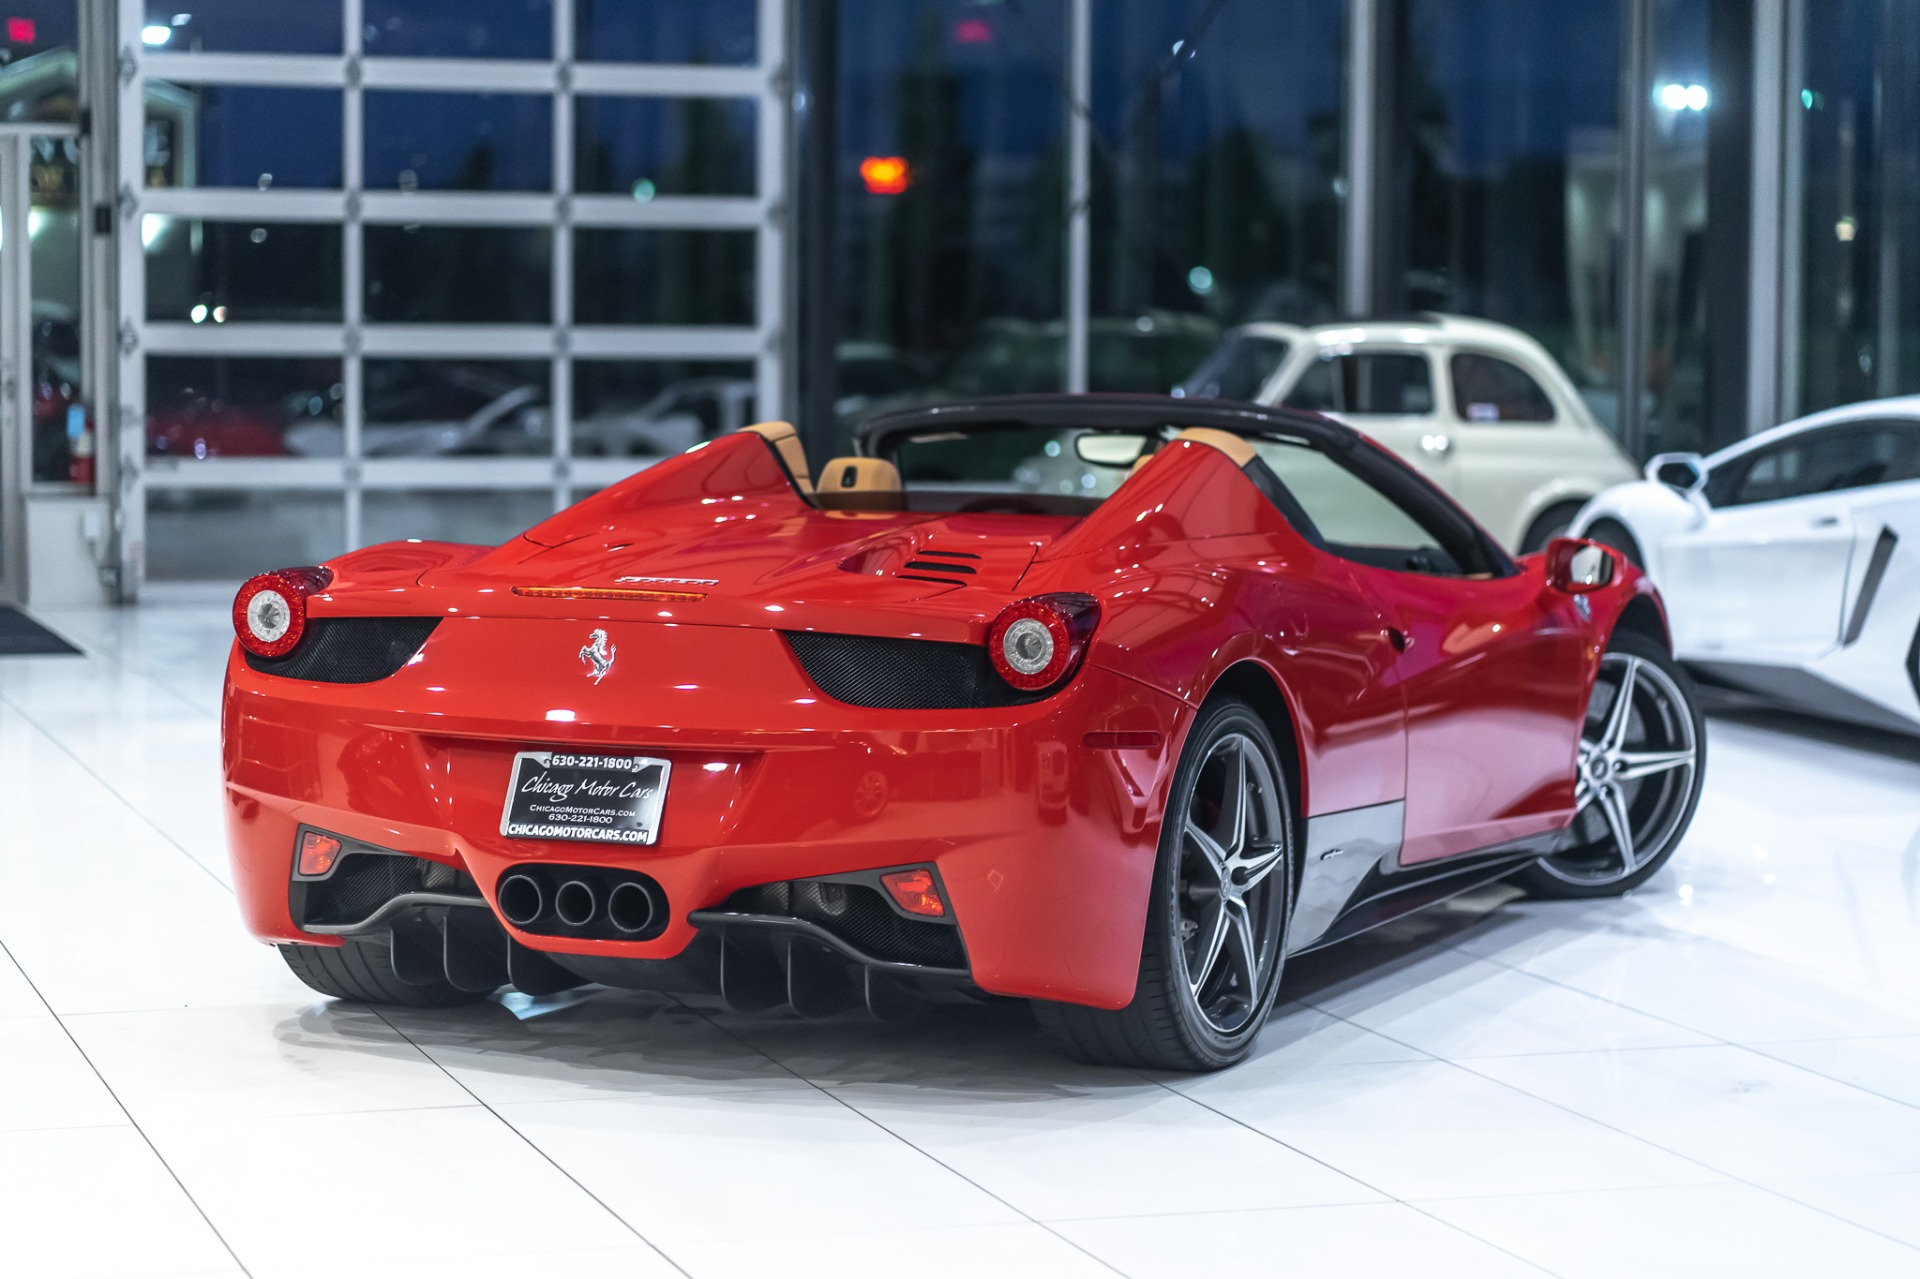 Used-2012-Ferrari-458-Spider-OVER-30K-IN-FACTORY-CARBON-FIBER-DAYTONA-STS-SPORT-EXHAUST